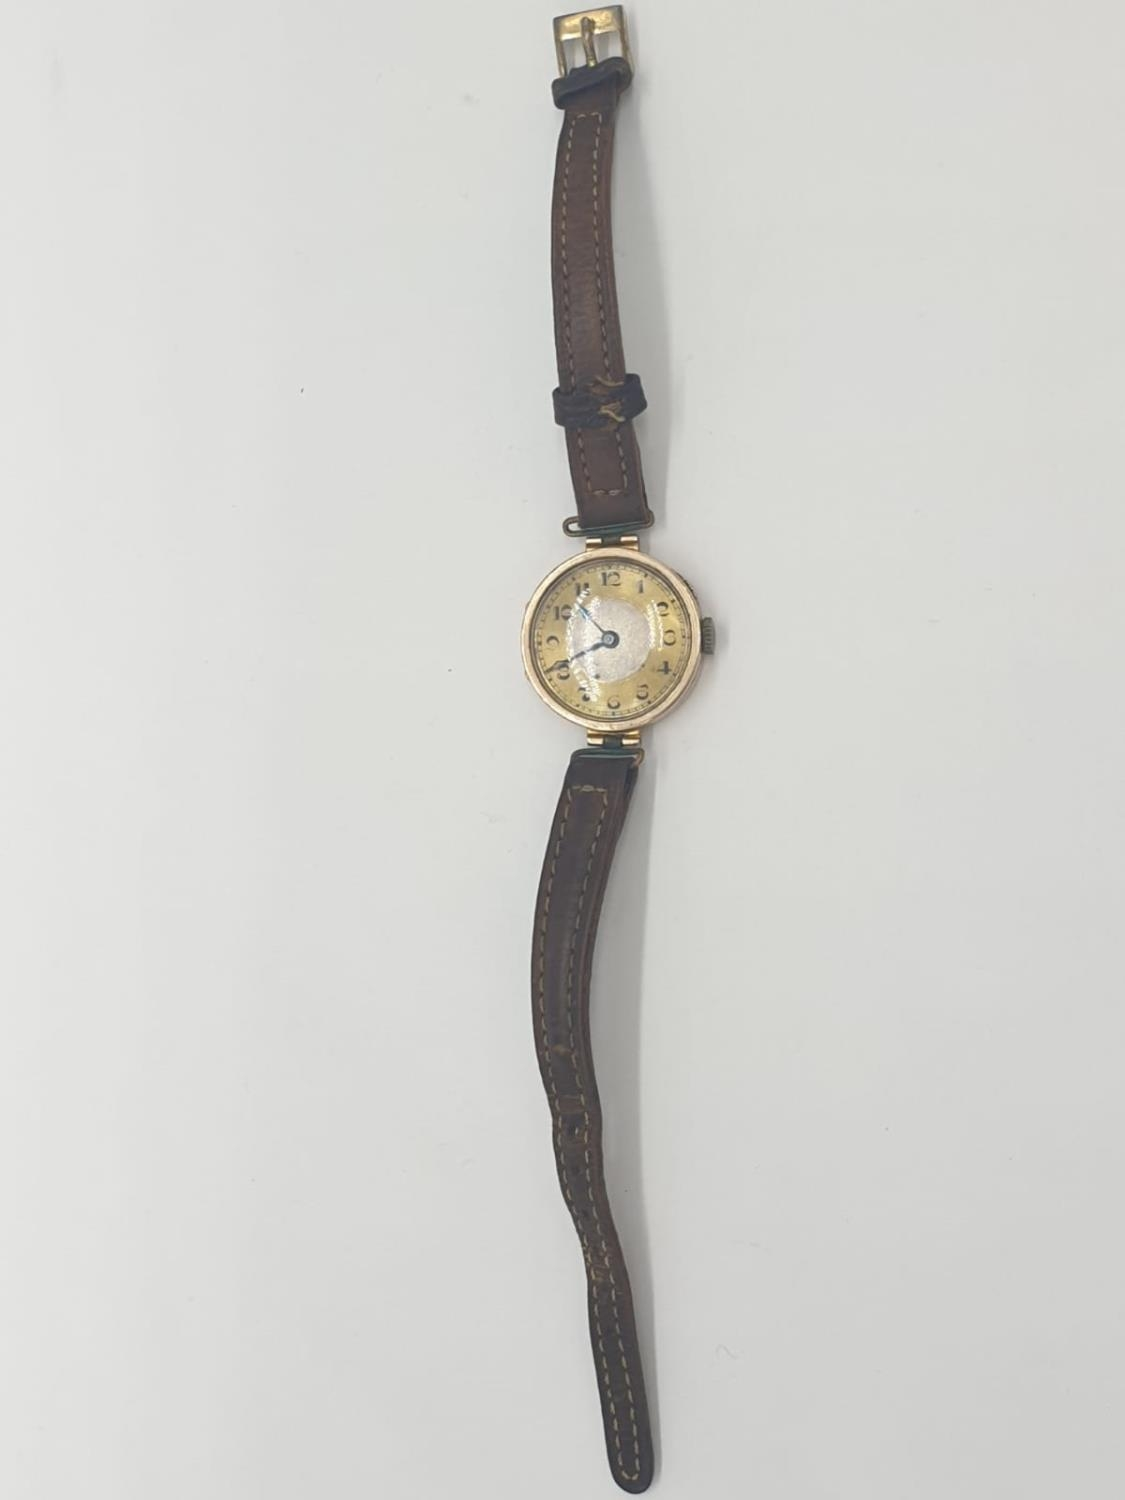 Vintage 9ct gold ladies wrist watch with leather strap - Image 7 of 9